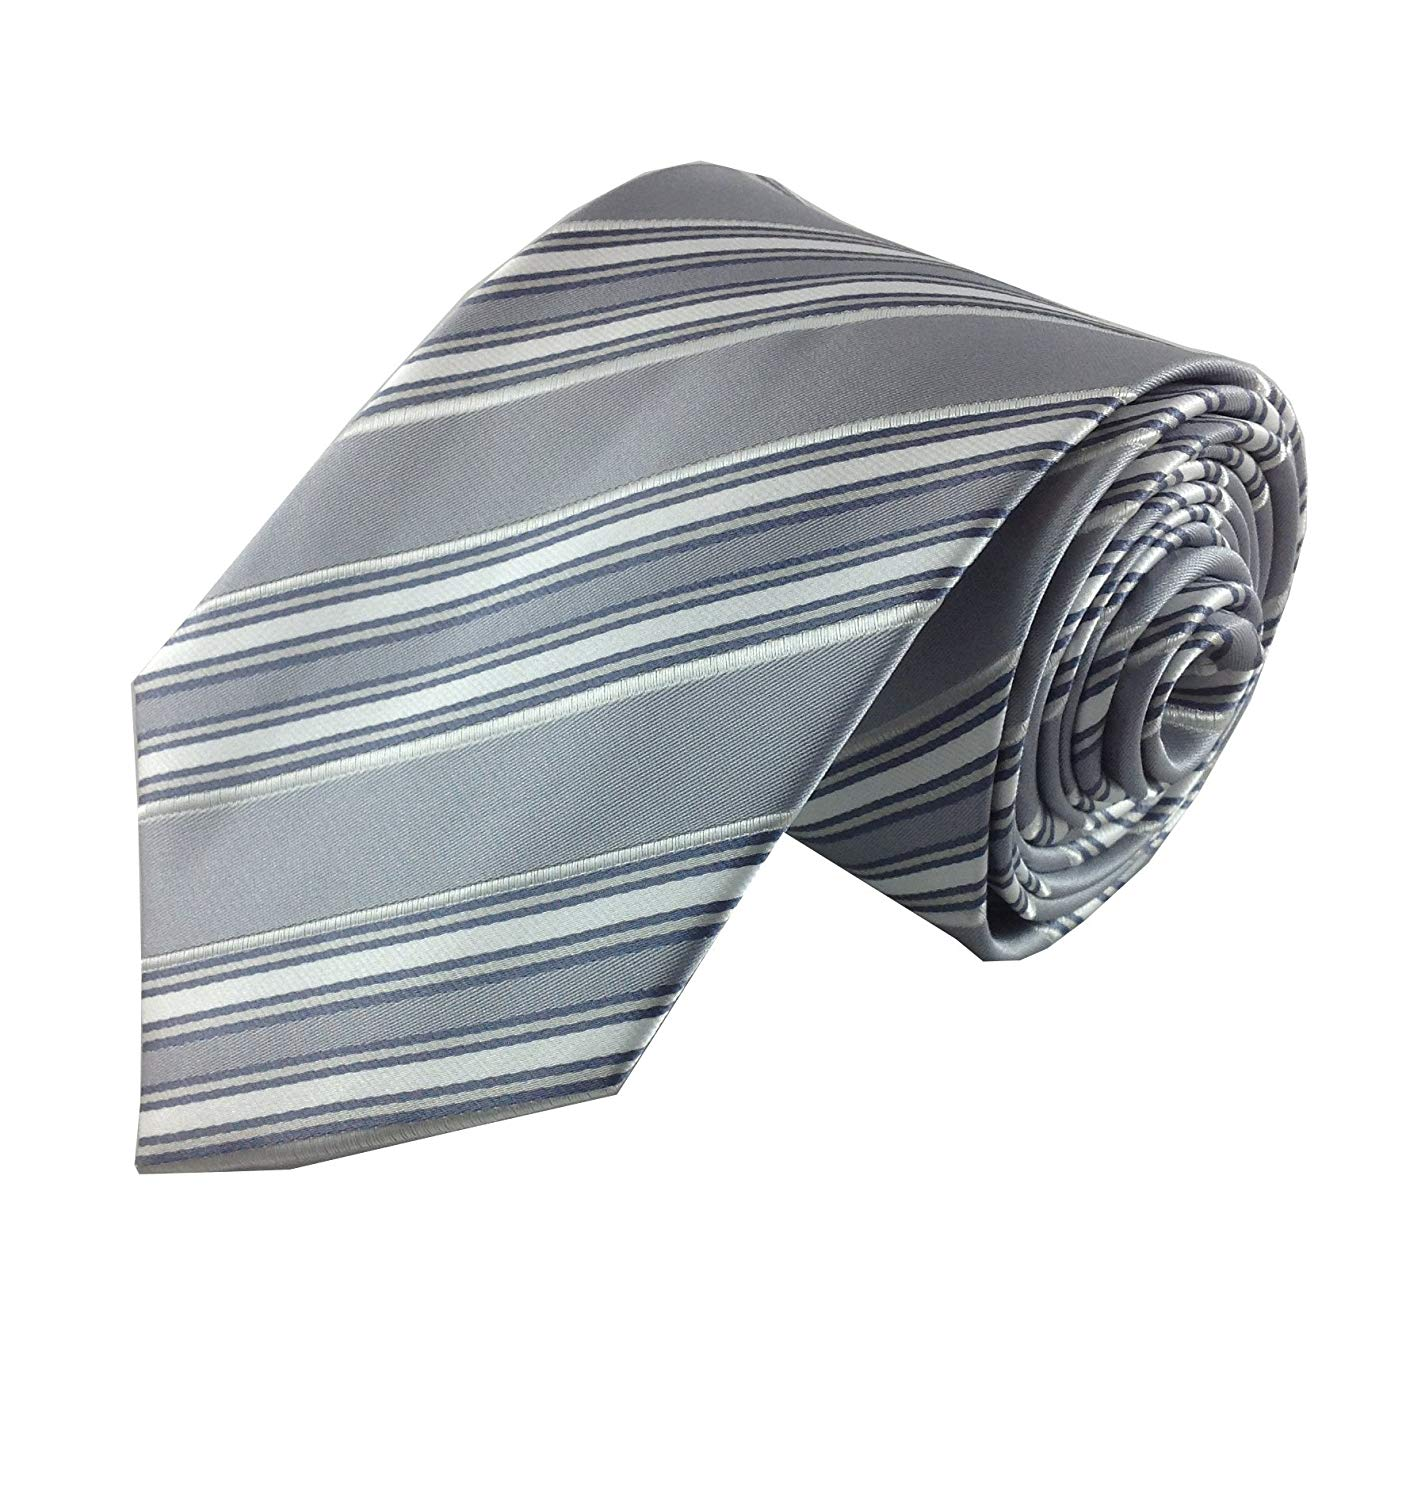 bc33373b7f3 ... Geometric Dot Stripe Classic Silk Woven Neck Tie Men Business Casual  Knitted Mens Ties Neckties 2015   11.87. Mens Necktie Silver Grey and White  Simple ...